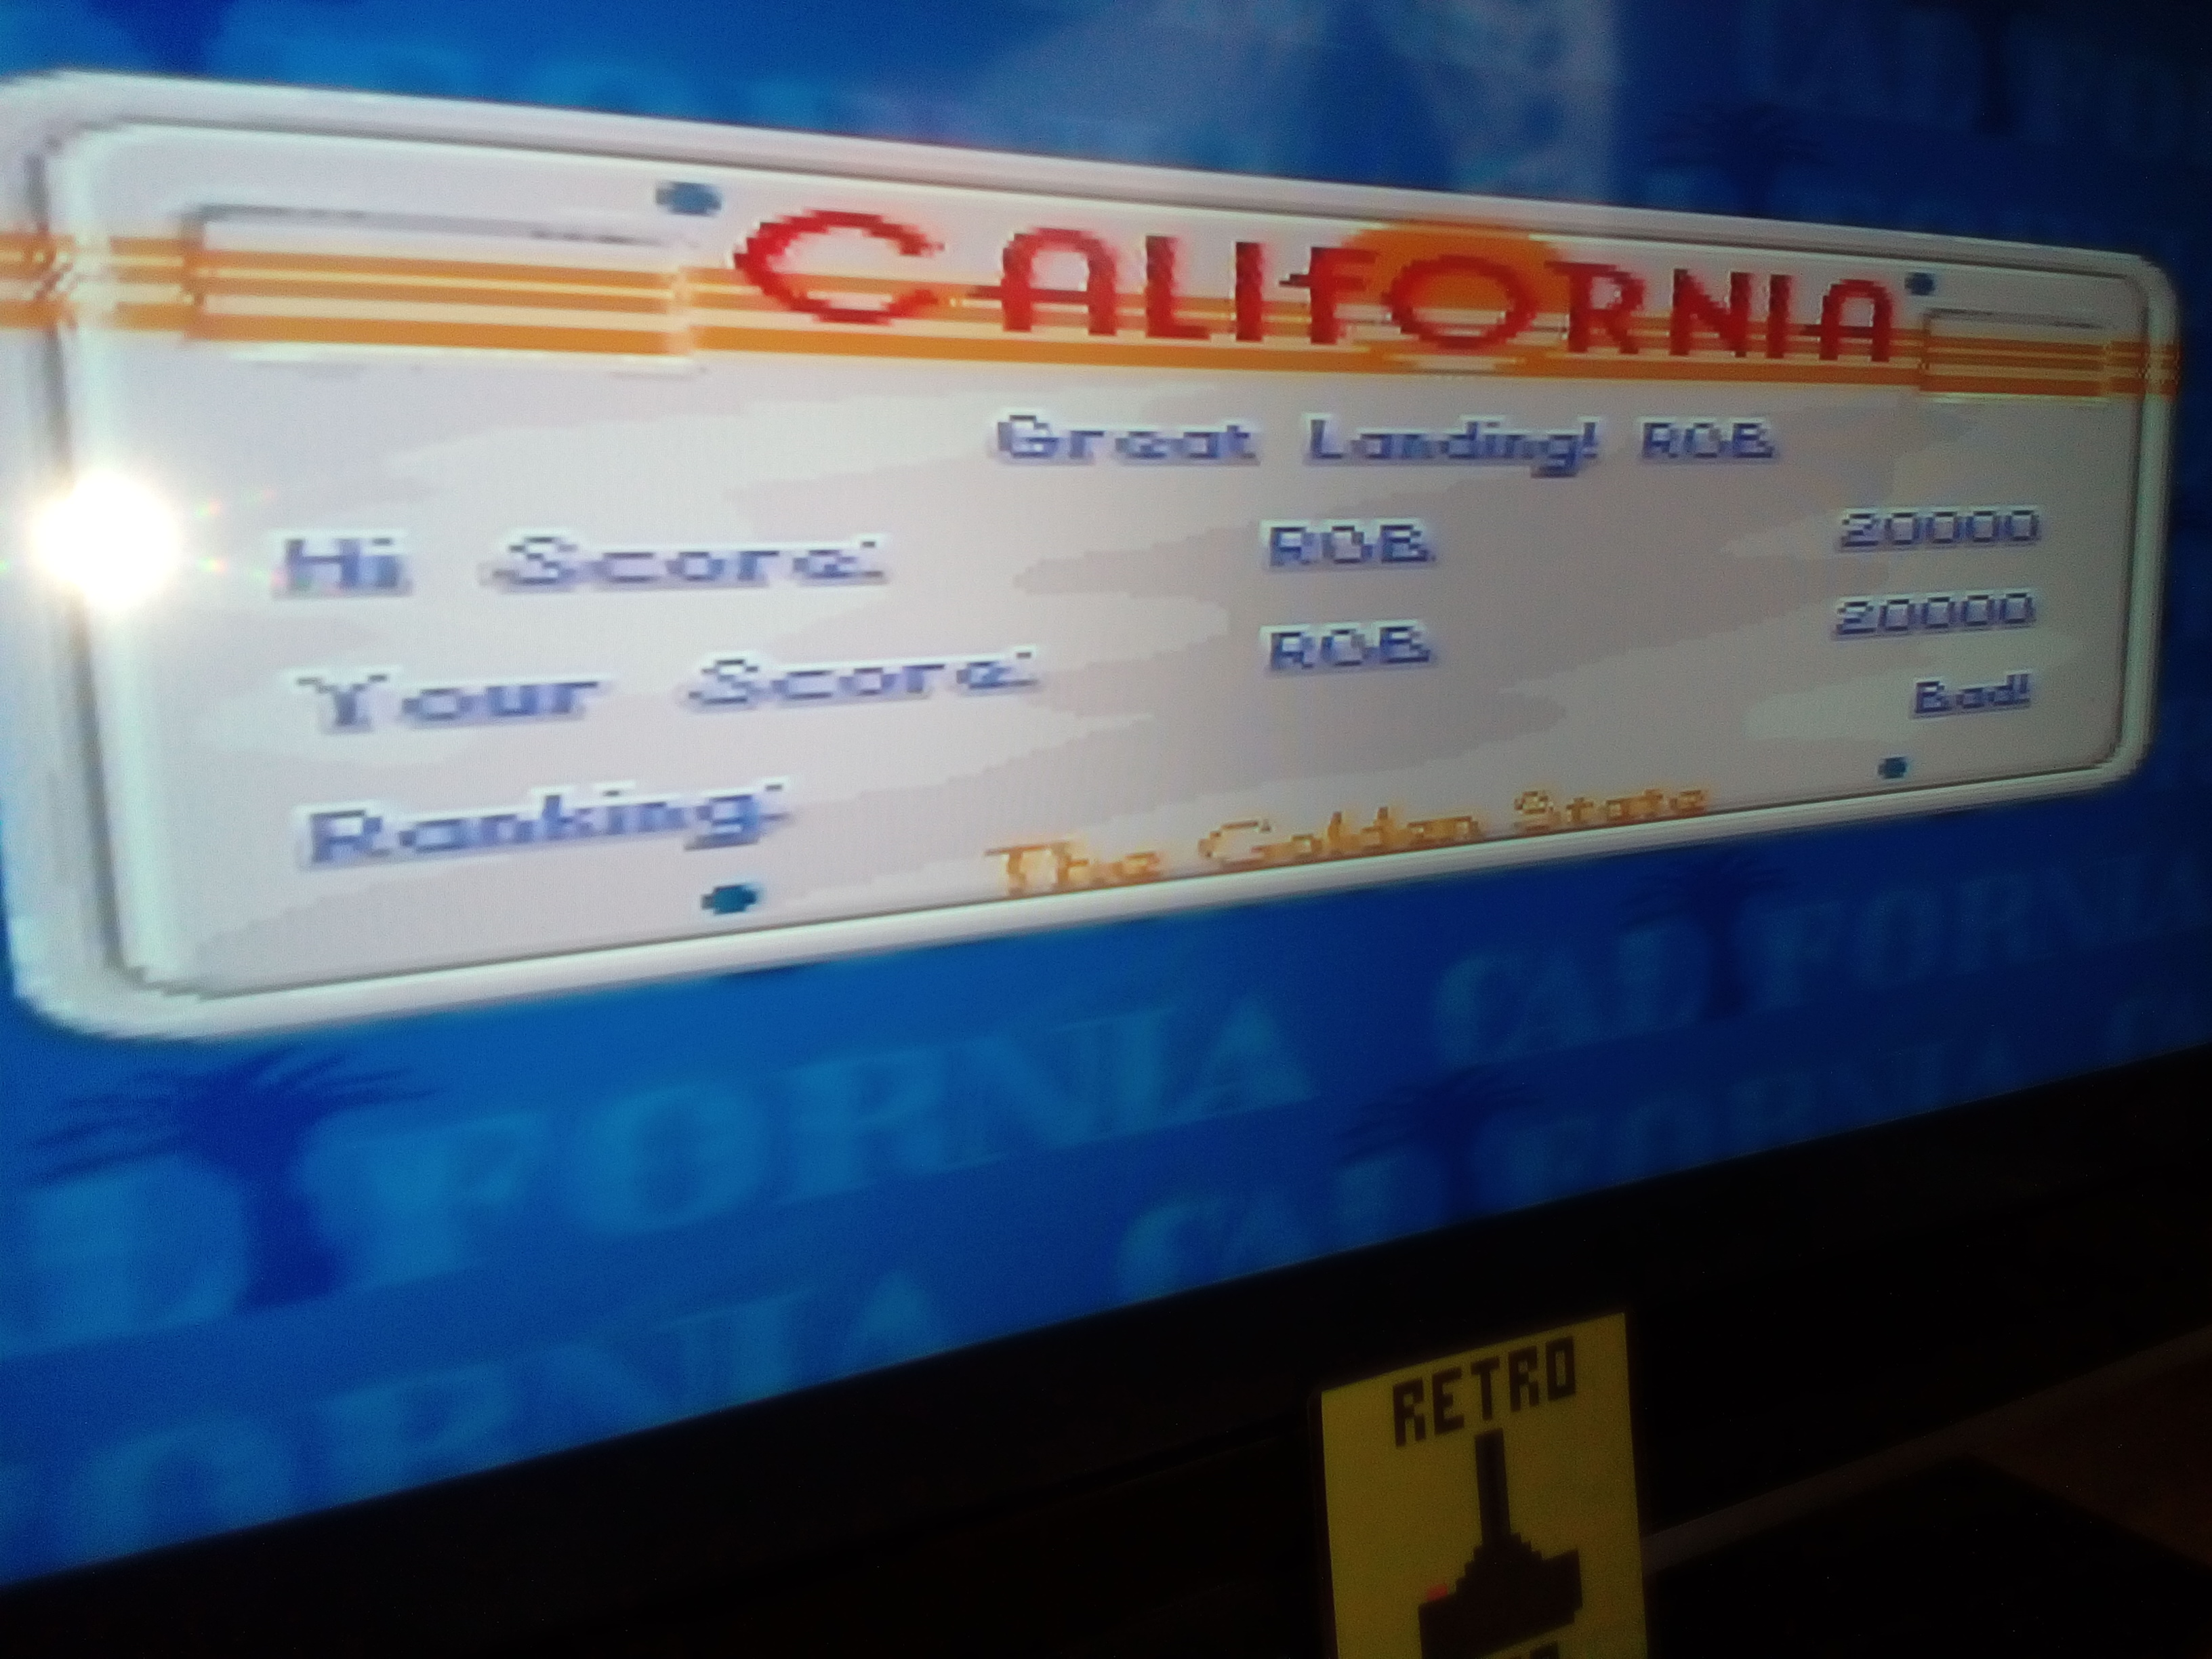 RetroRob: California Games II [Hang Gliding] (SNES/Super Famicom) 20,000 points on 2019-03-10 03:44:53